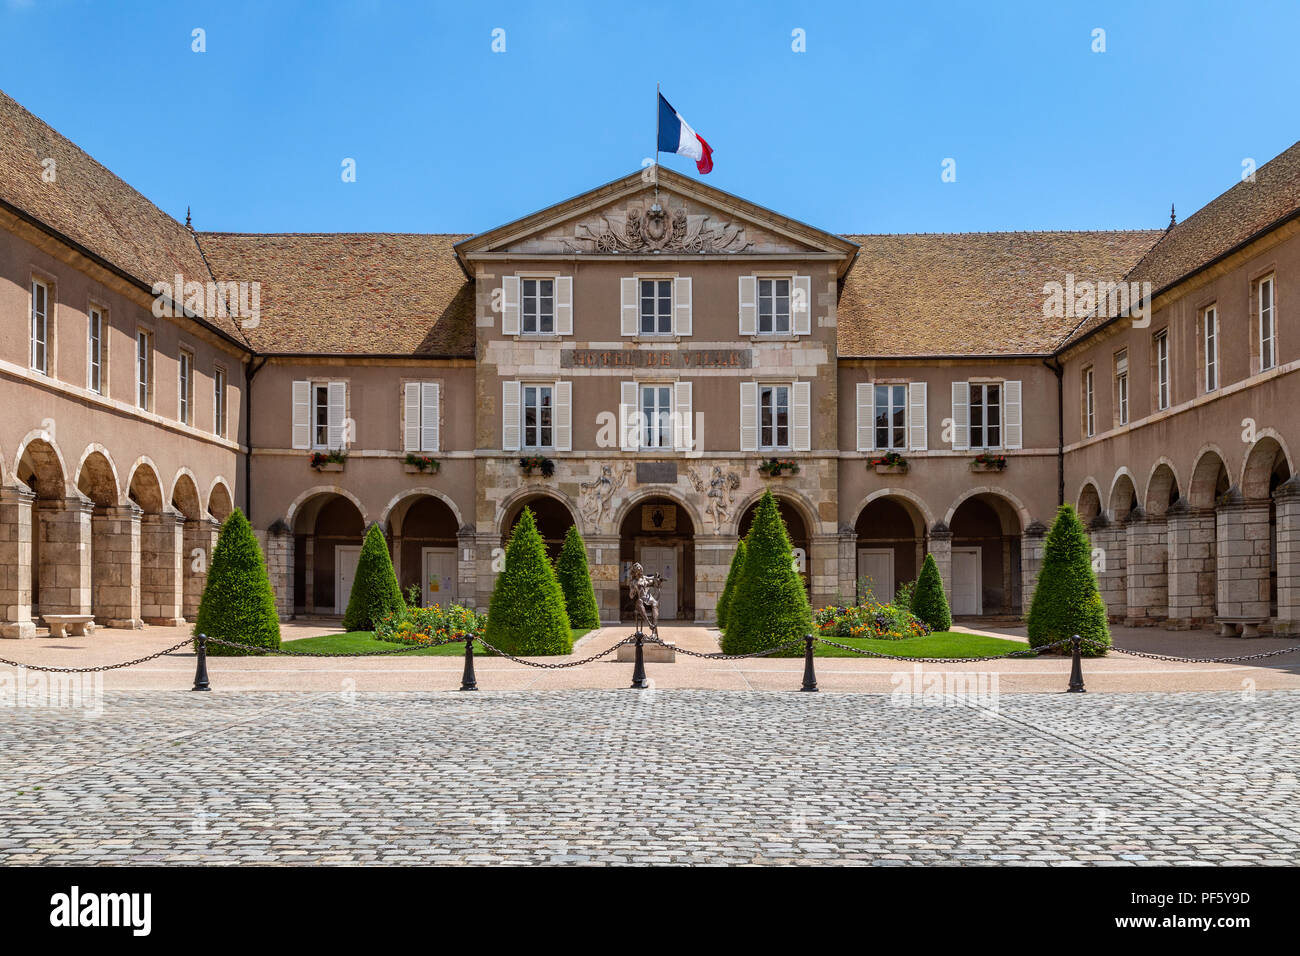 The Hotel de Ville (Town Hall) in the town of Beaune in the Burgundy region of eastern France. - Stock Image